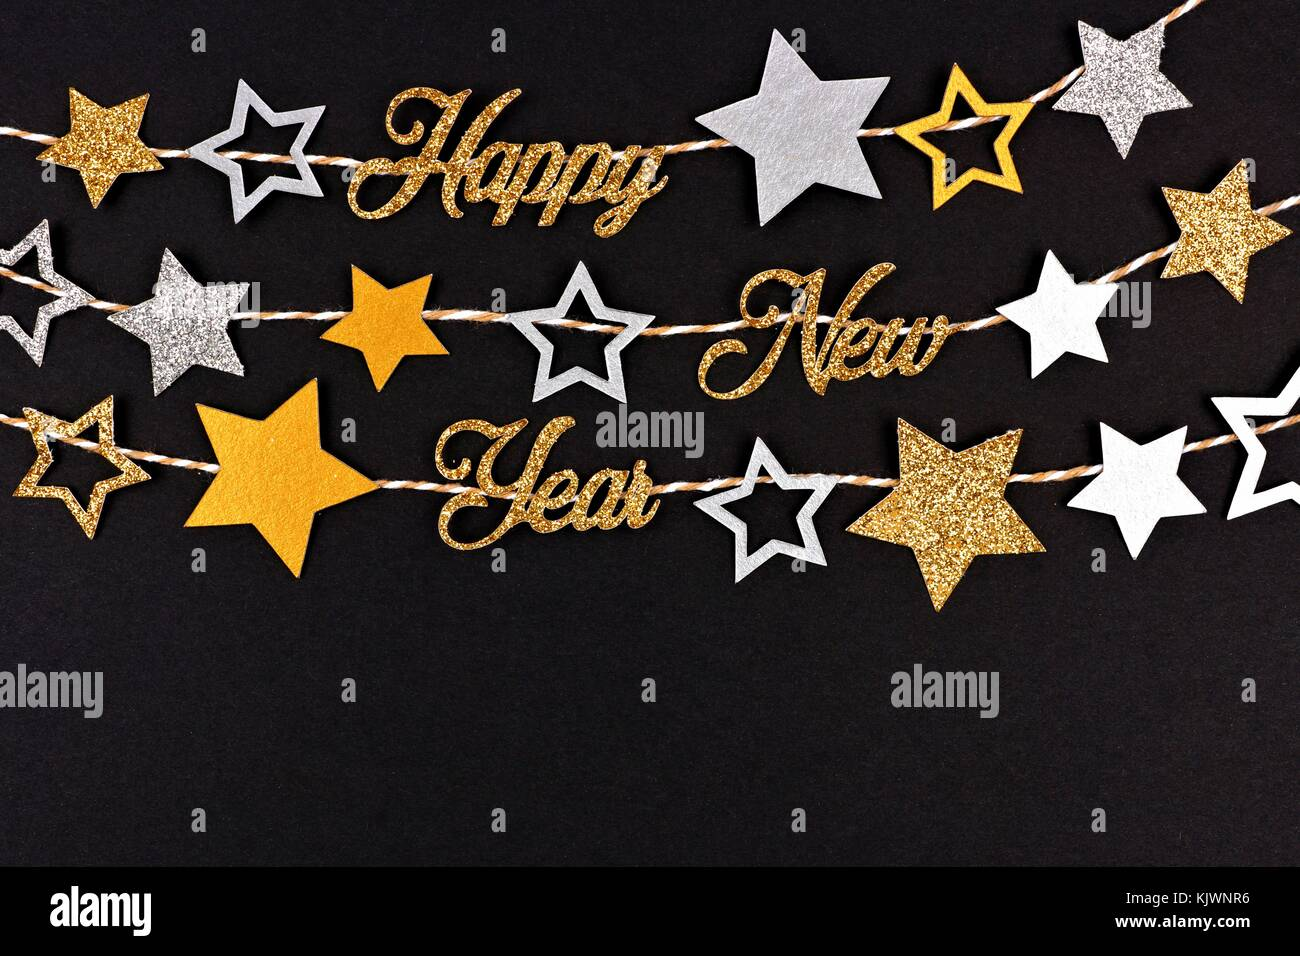 happy new year glitter text banner with strings of gold and silver stars against a black paper background